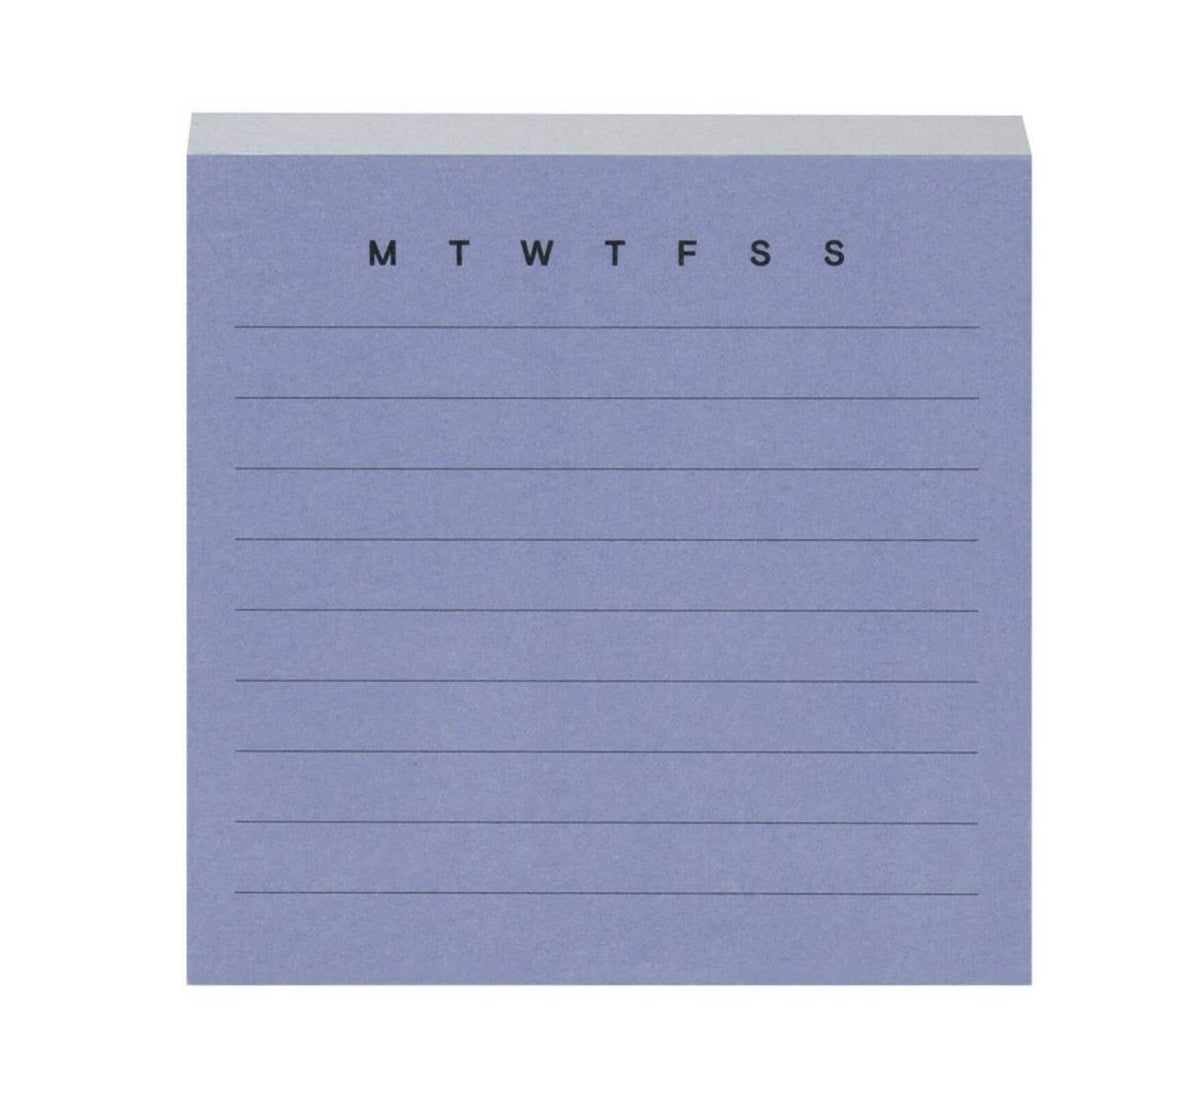 The purple pad of lined notes with MTWTFSS at the top so you can circle the day